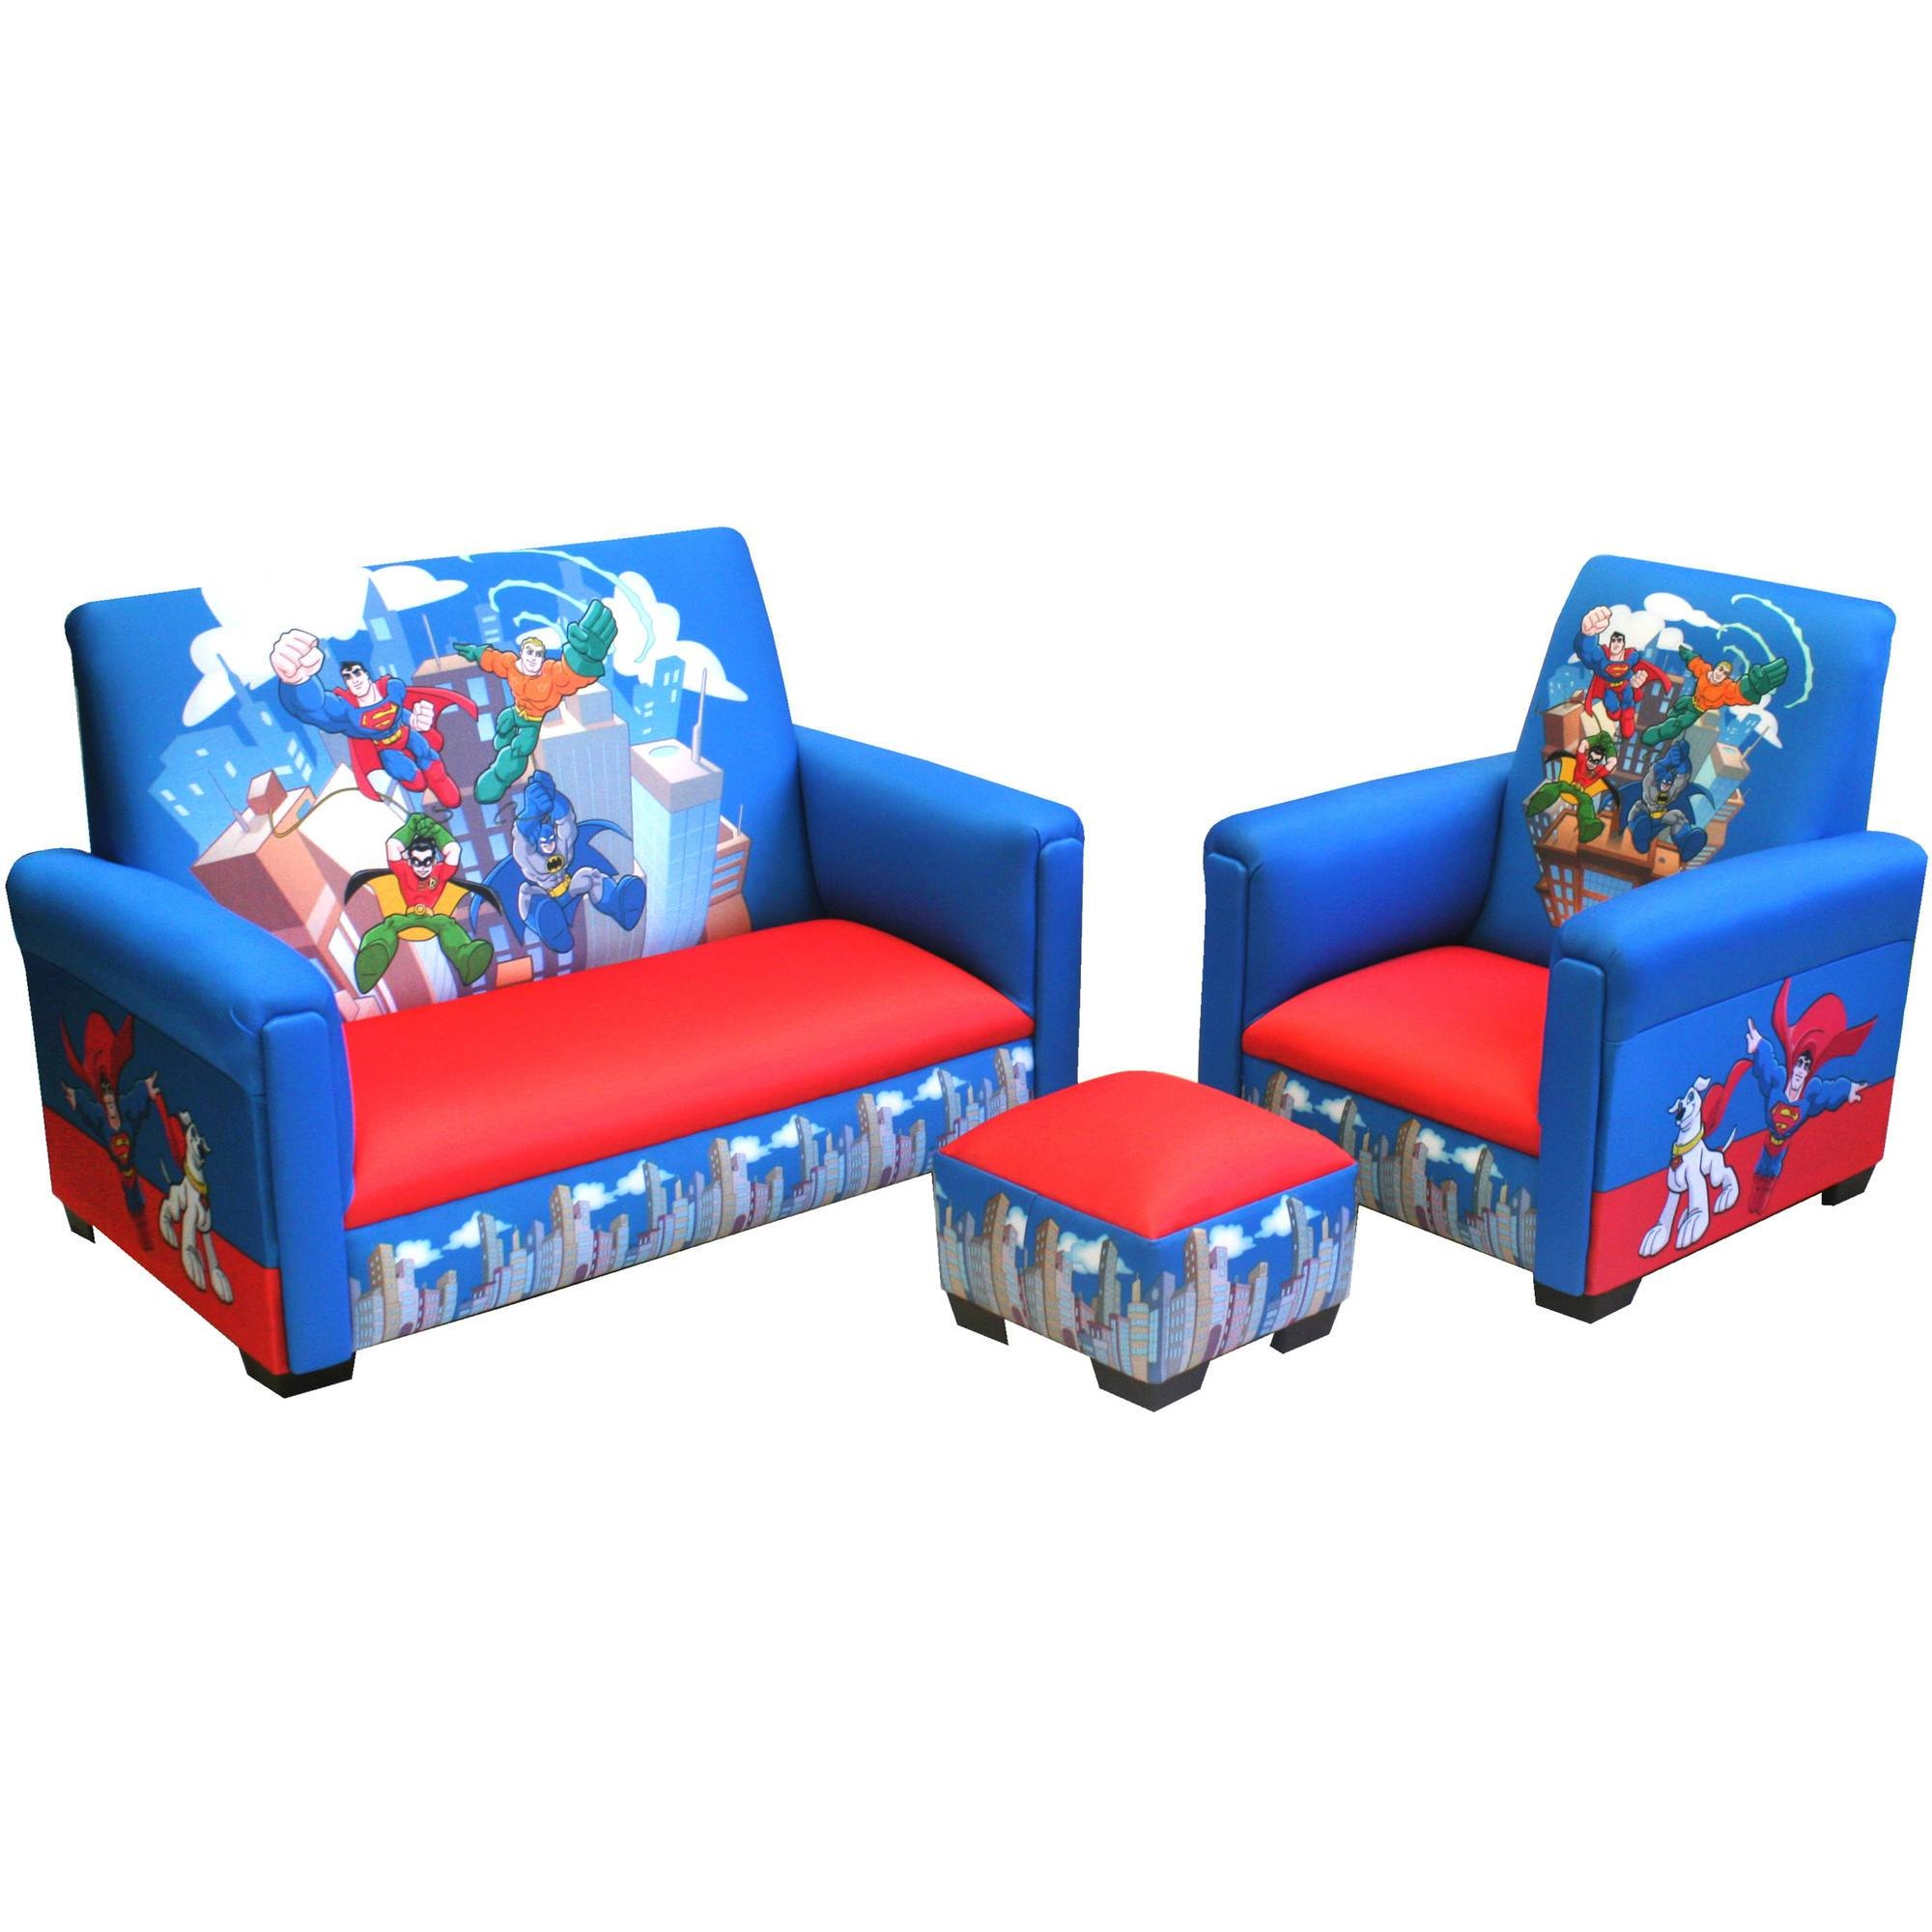 Sofas Center : Online Get Cheap Kids Couches Aliexpress Com intended for Cheap Kids Sofas (Image 20 of 30)